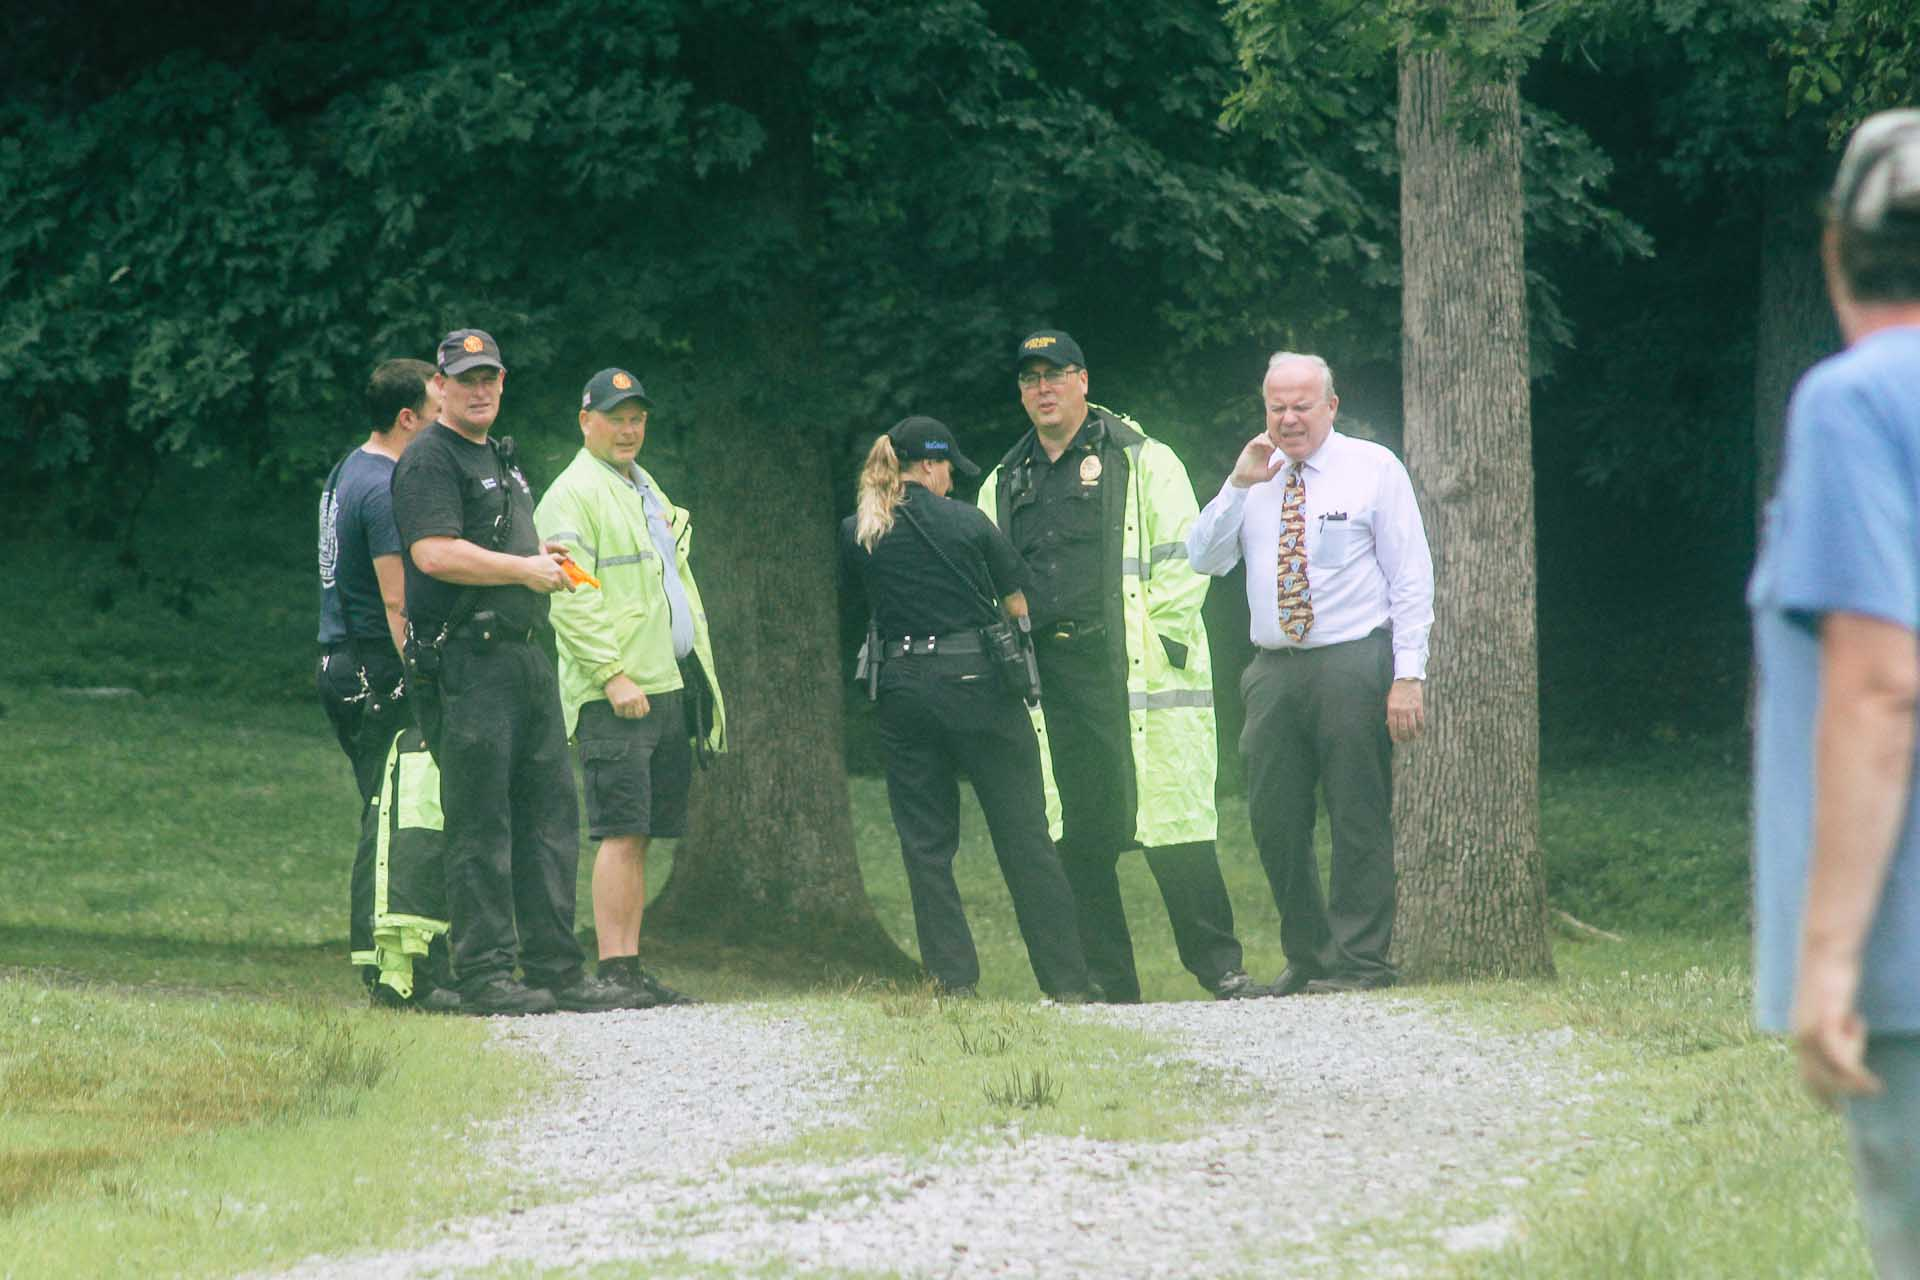 UPDATED: Buckhannon City parks to reopen Friday following bomb scare